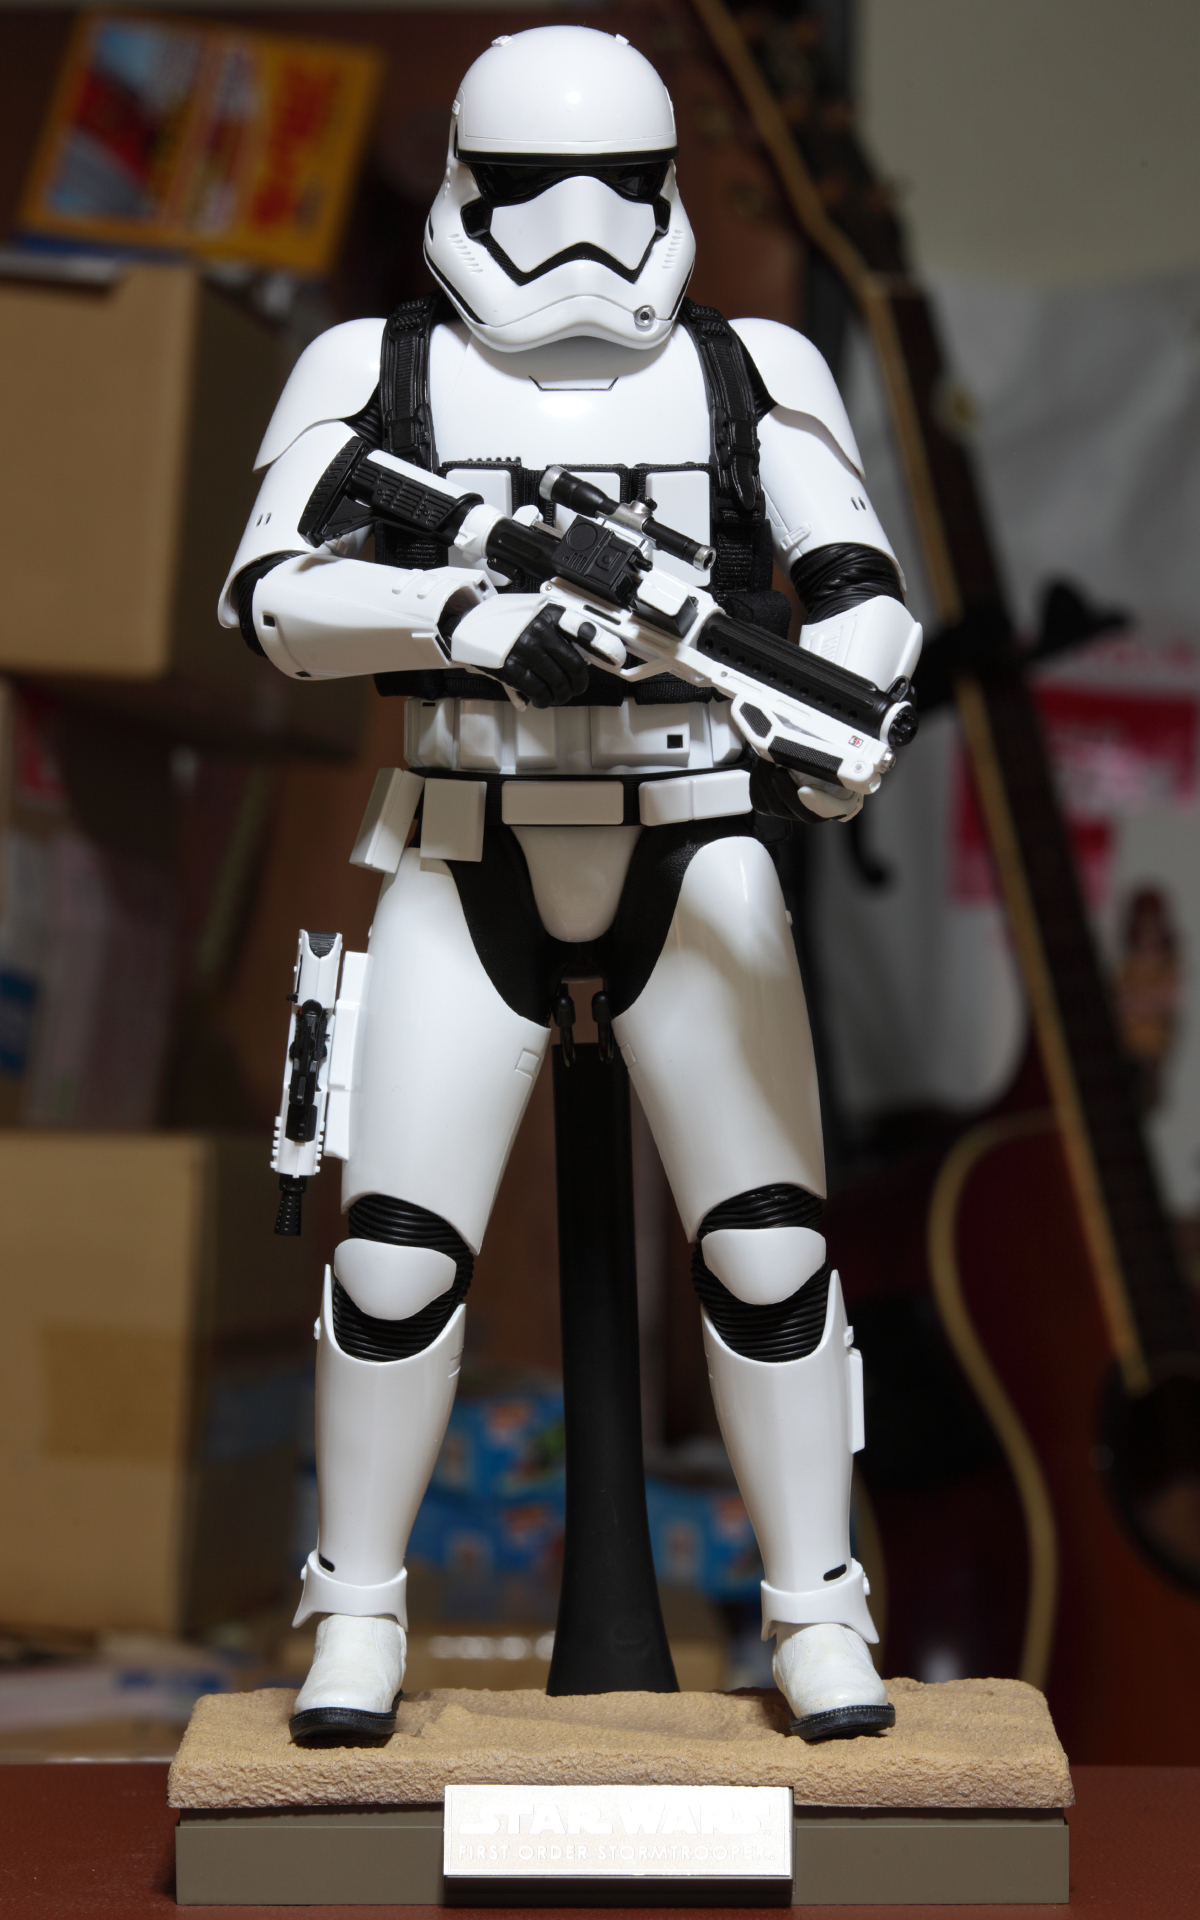 hottoys-star-wars-the-force-awakens-first-order-stormtrooper-jakku-picture12